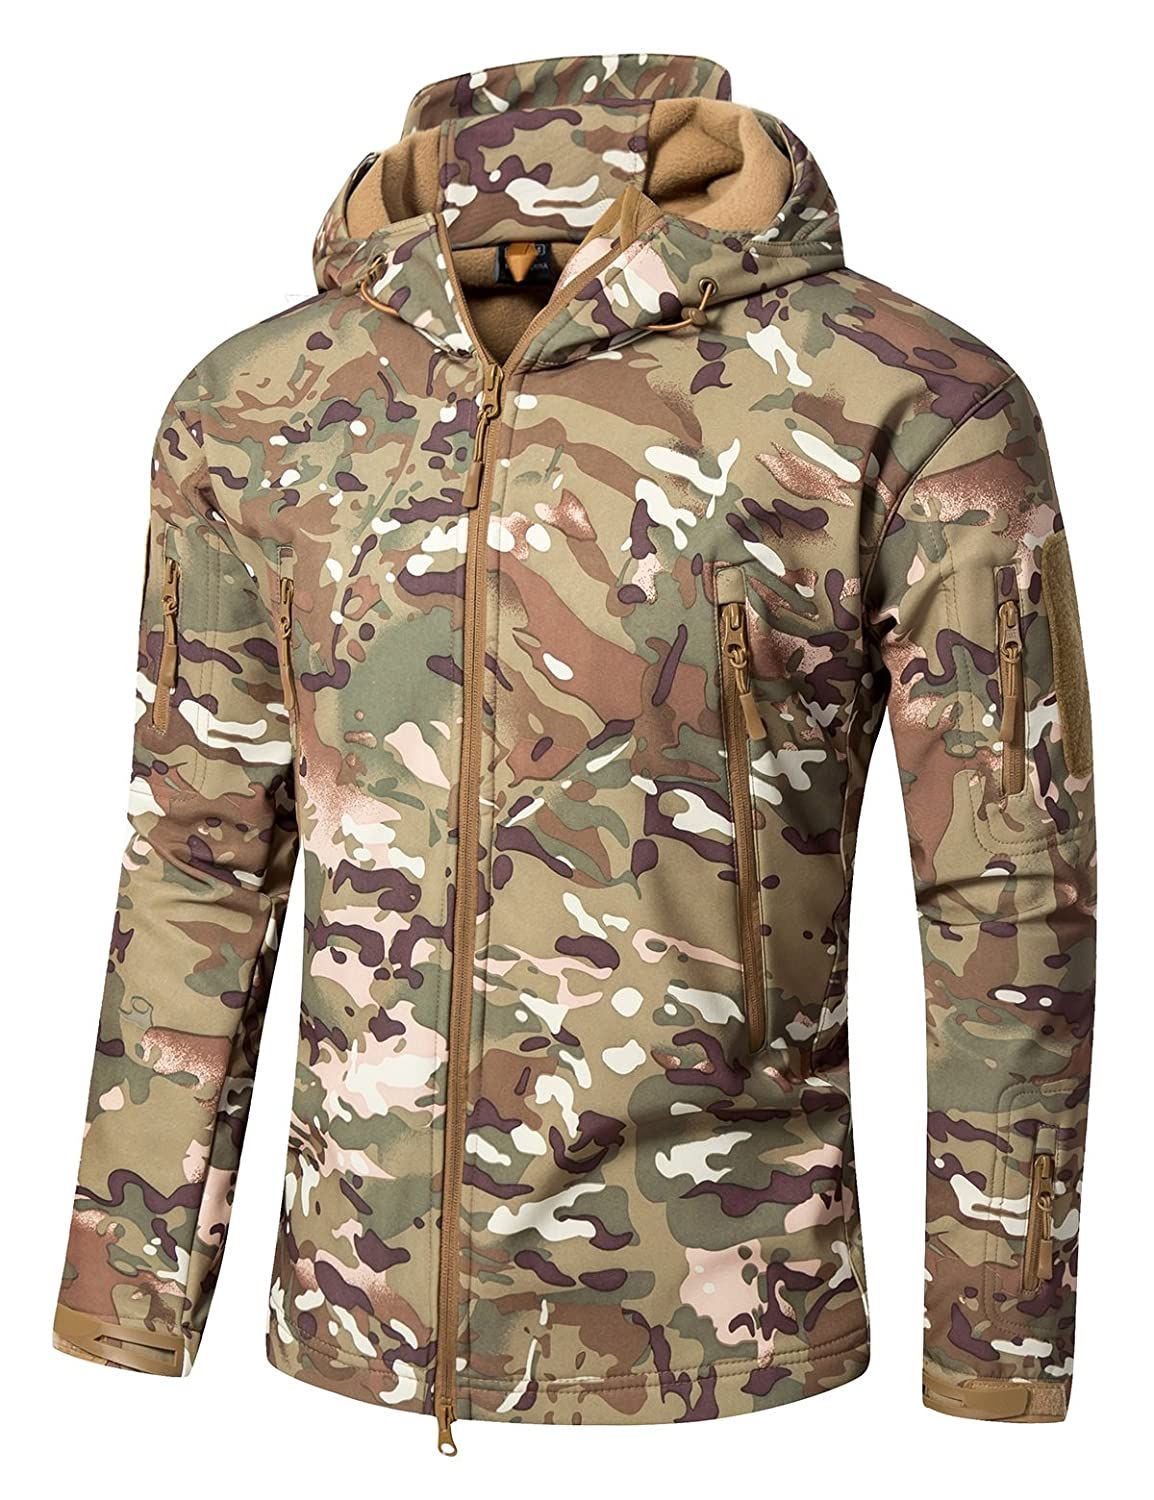 YFNT Men's Tactical Military Soft Shell Fleece Hoodie Jacket Windproof Coat L02RCFY-P